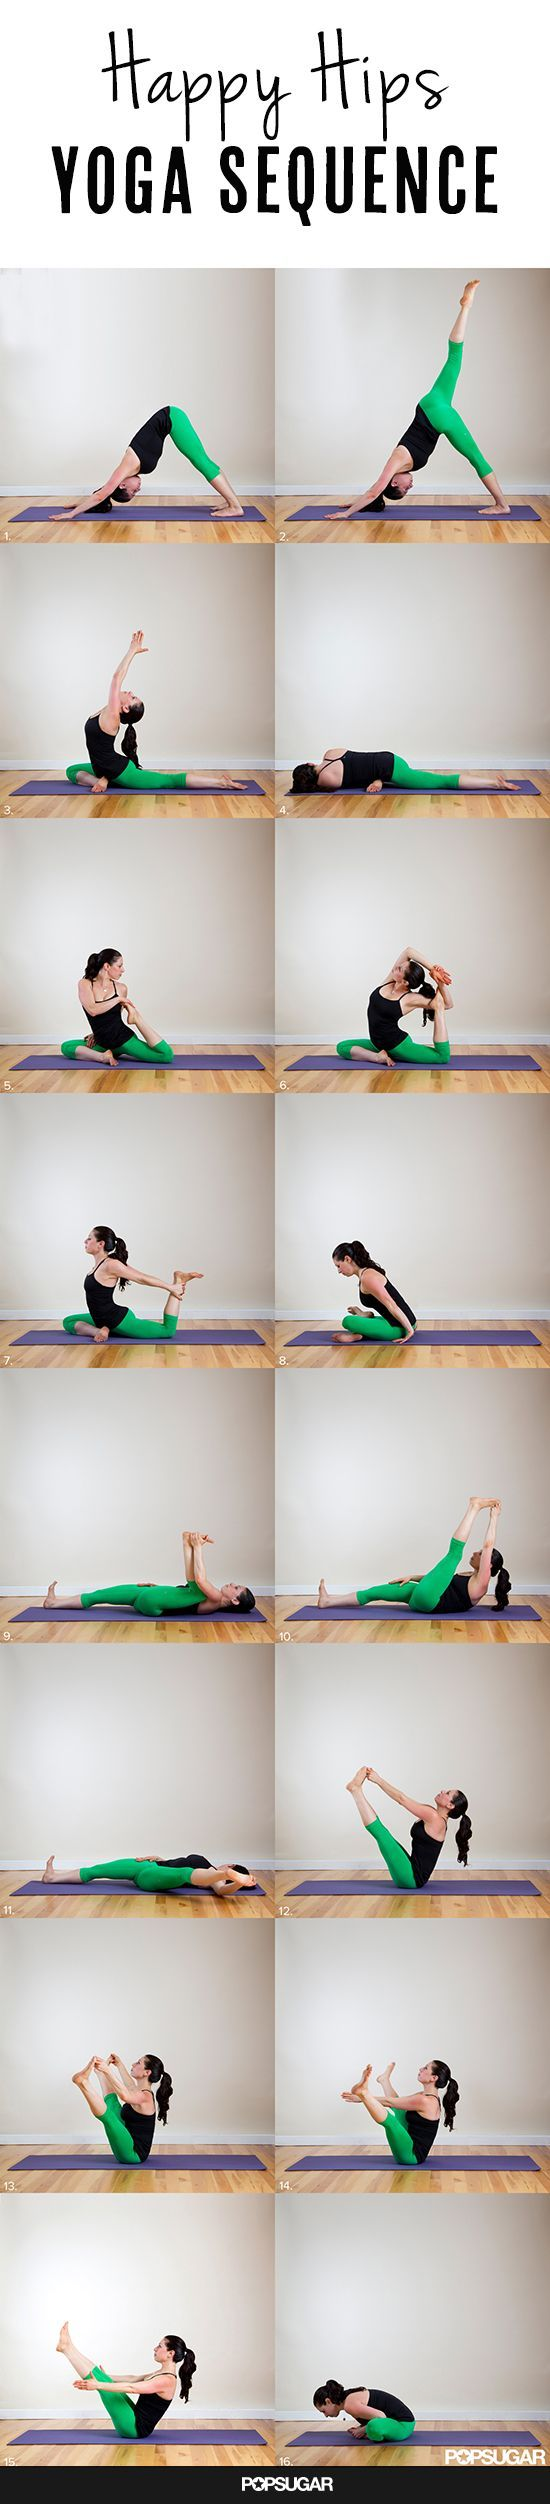 Happy Hips Yoga Sequence- Oh my... I am not sure I can do these, but I can try!